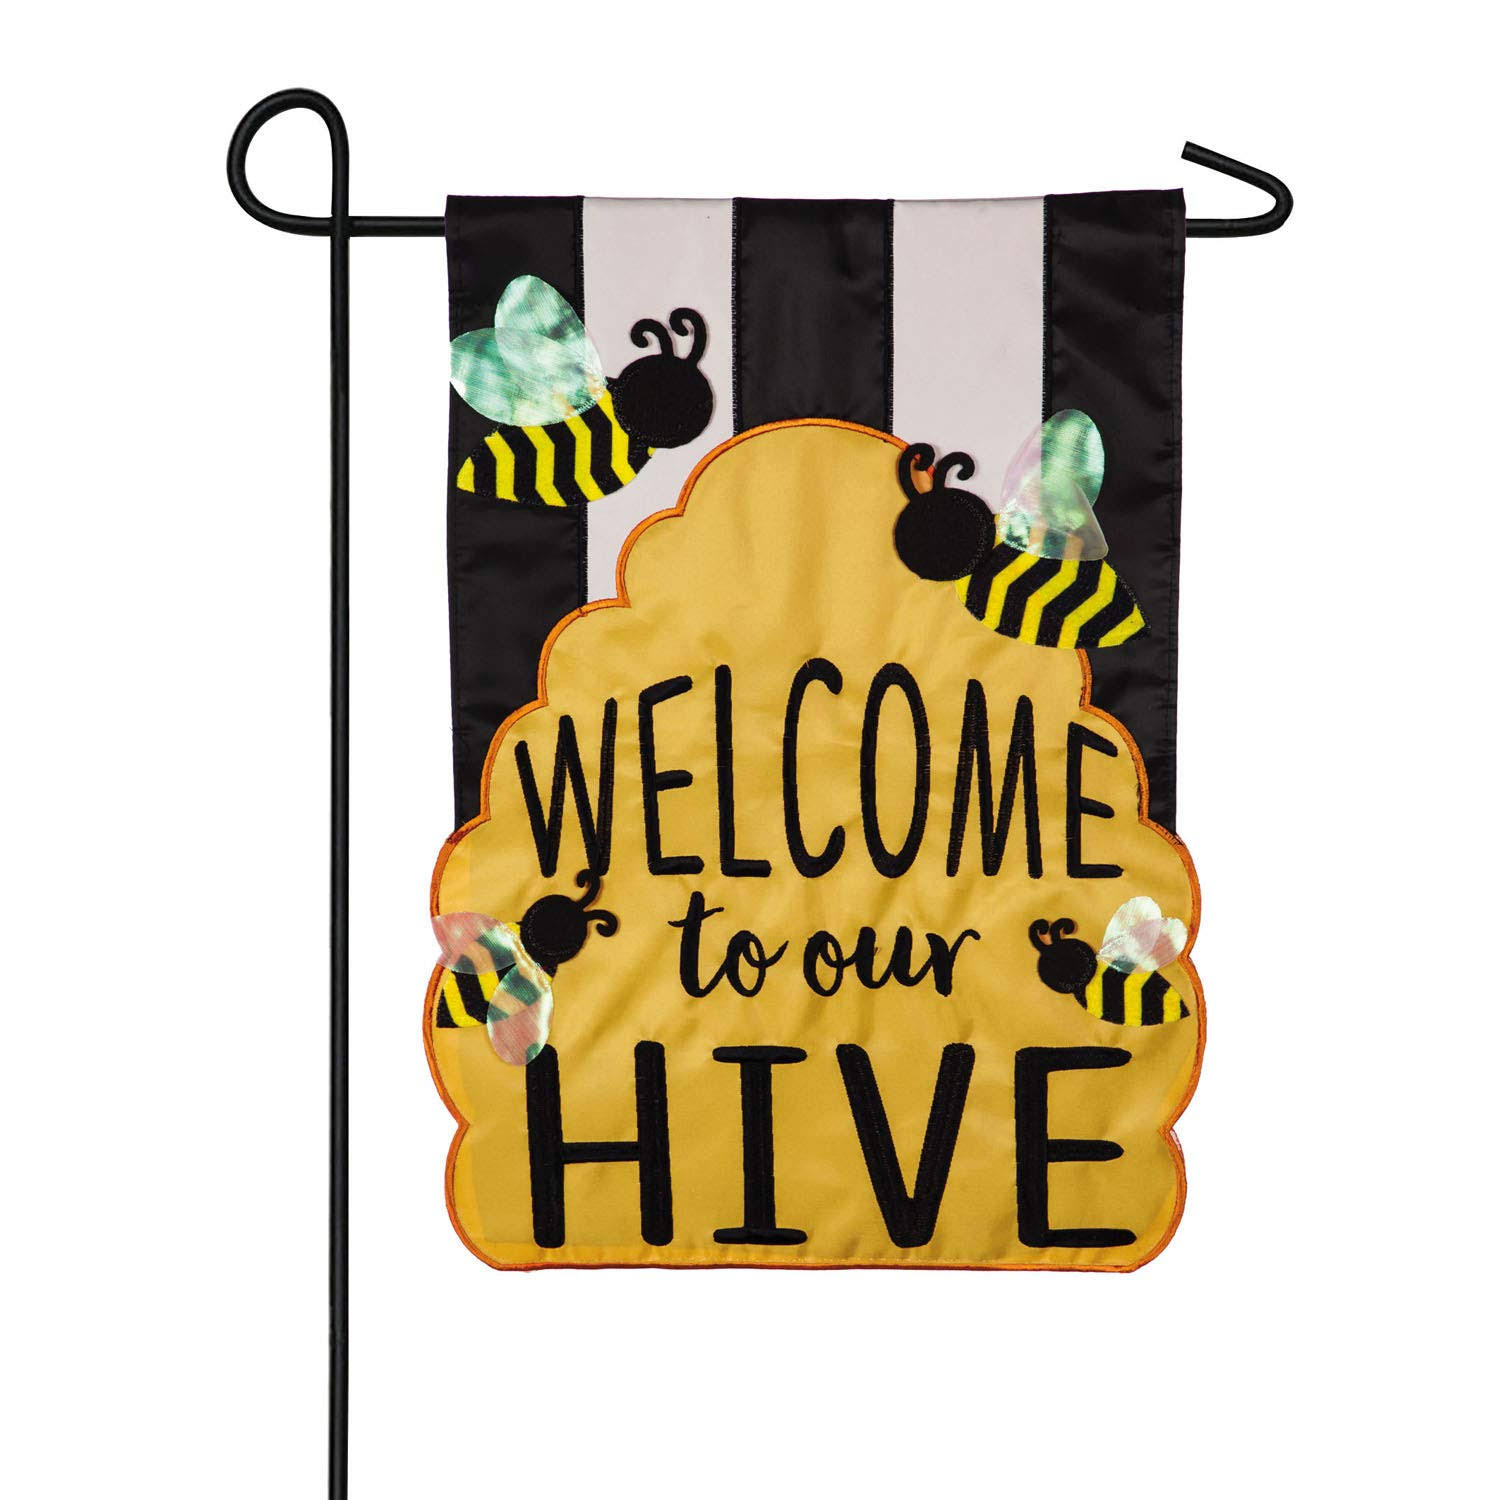 Evergreen Flags Welcome to Our Hive Applique Garden Flag